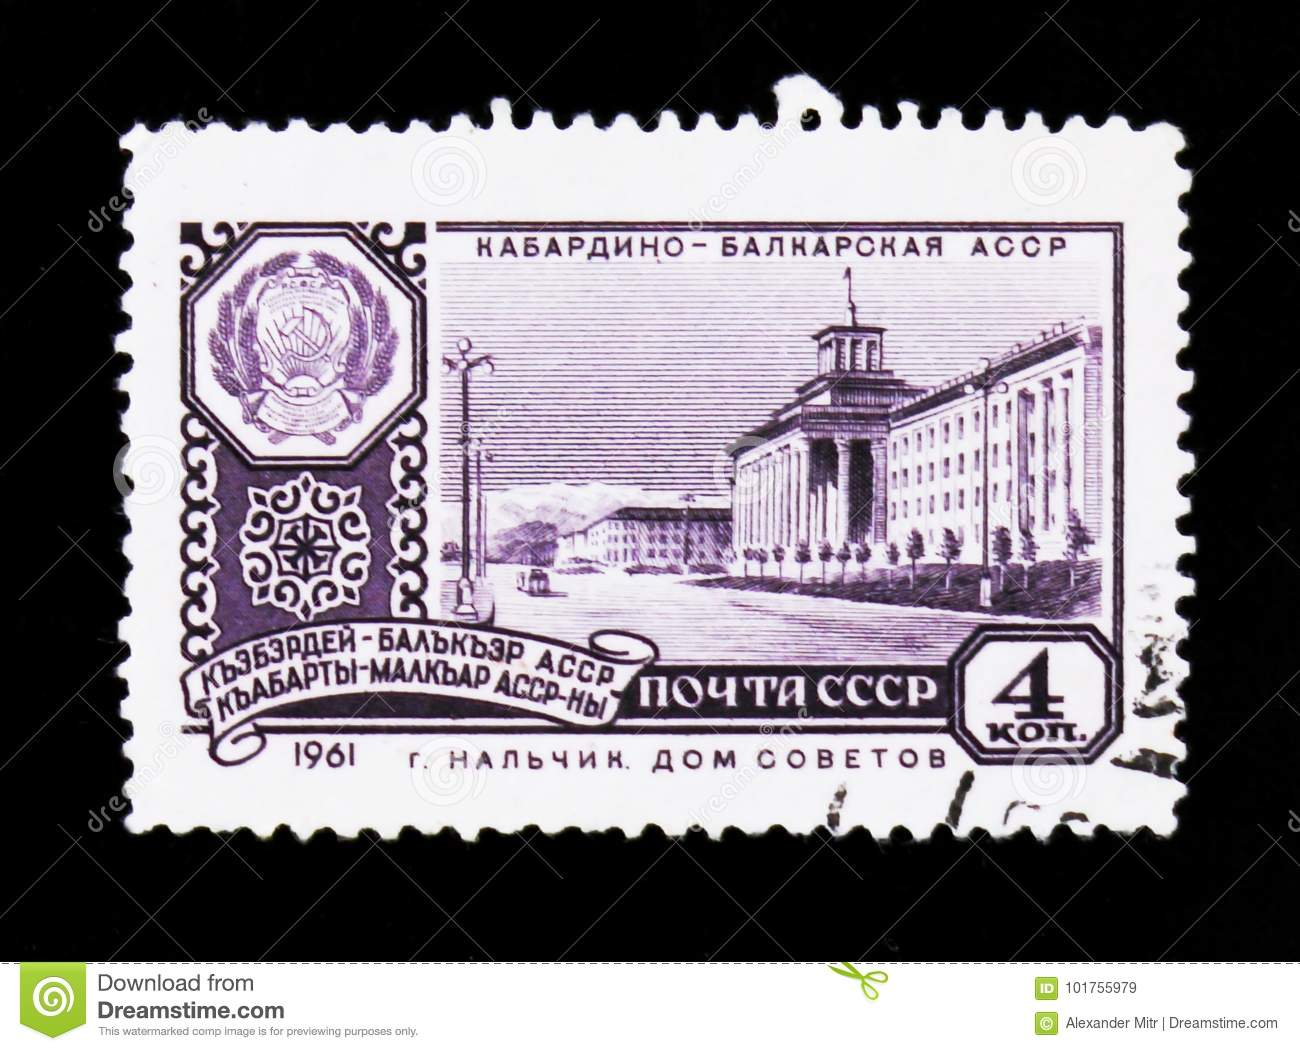 MOSCOW, RUSSIA - JUNE 26, 2017: A stamp printed in USSR (Russia) shows Kabardino-Balkarian ASSR, Nalchik, House